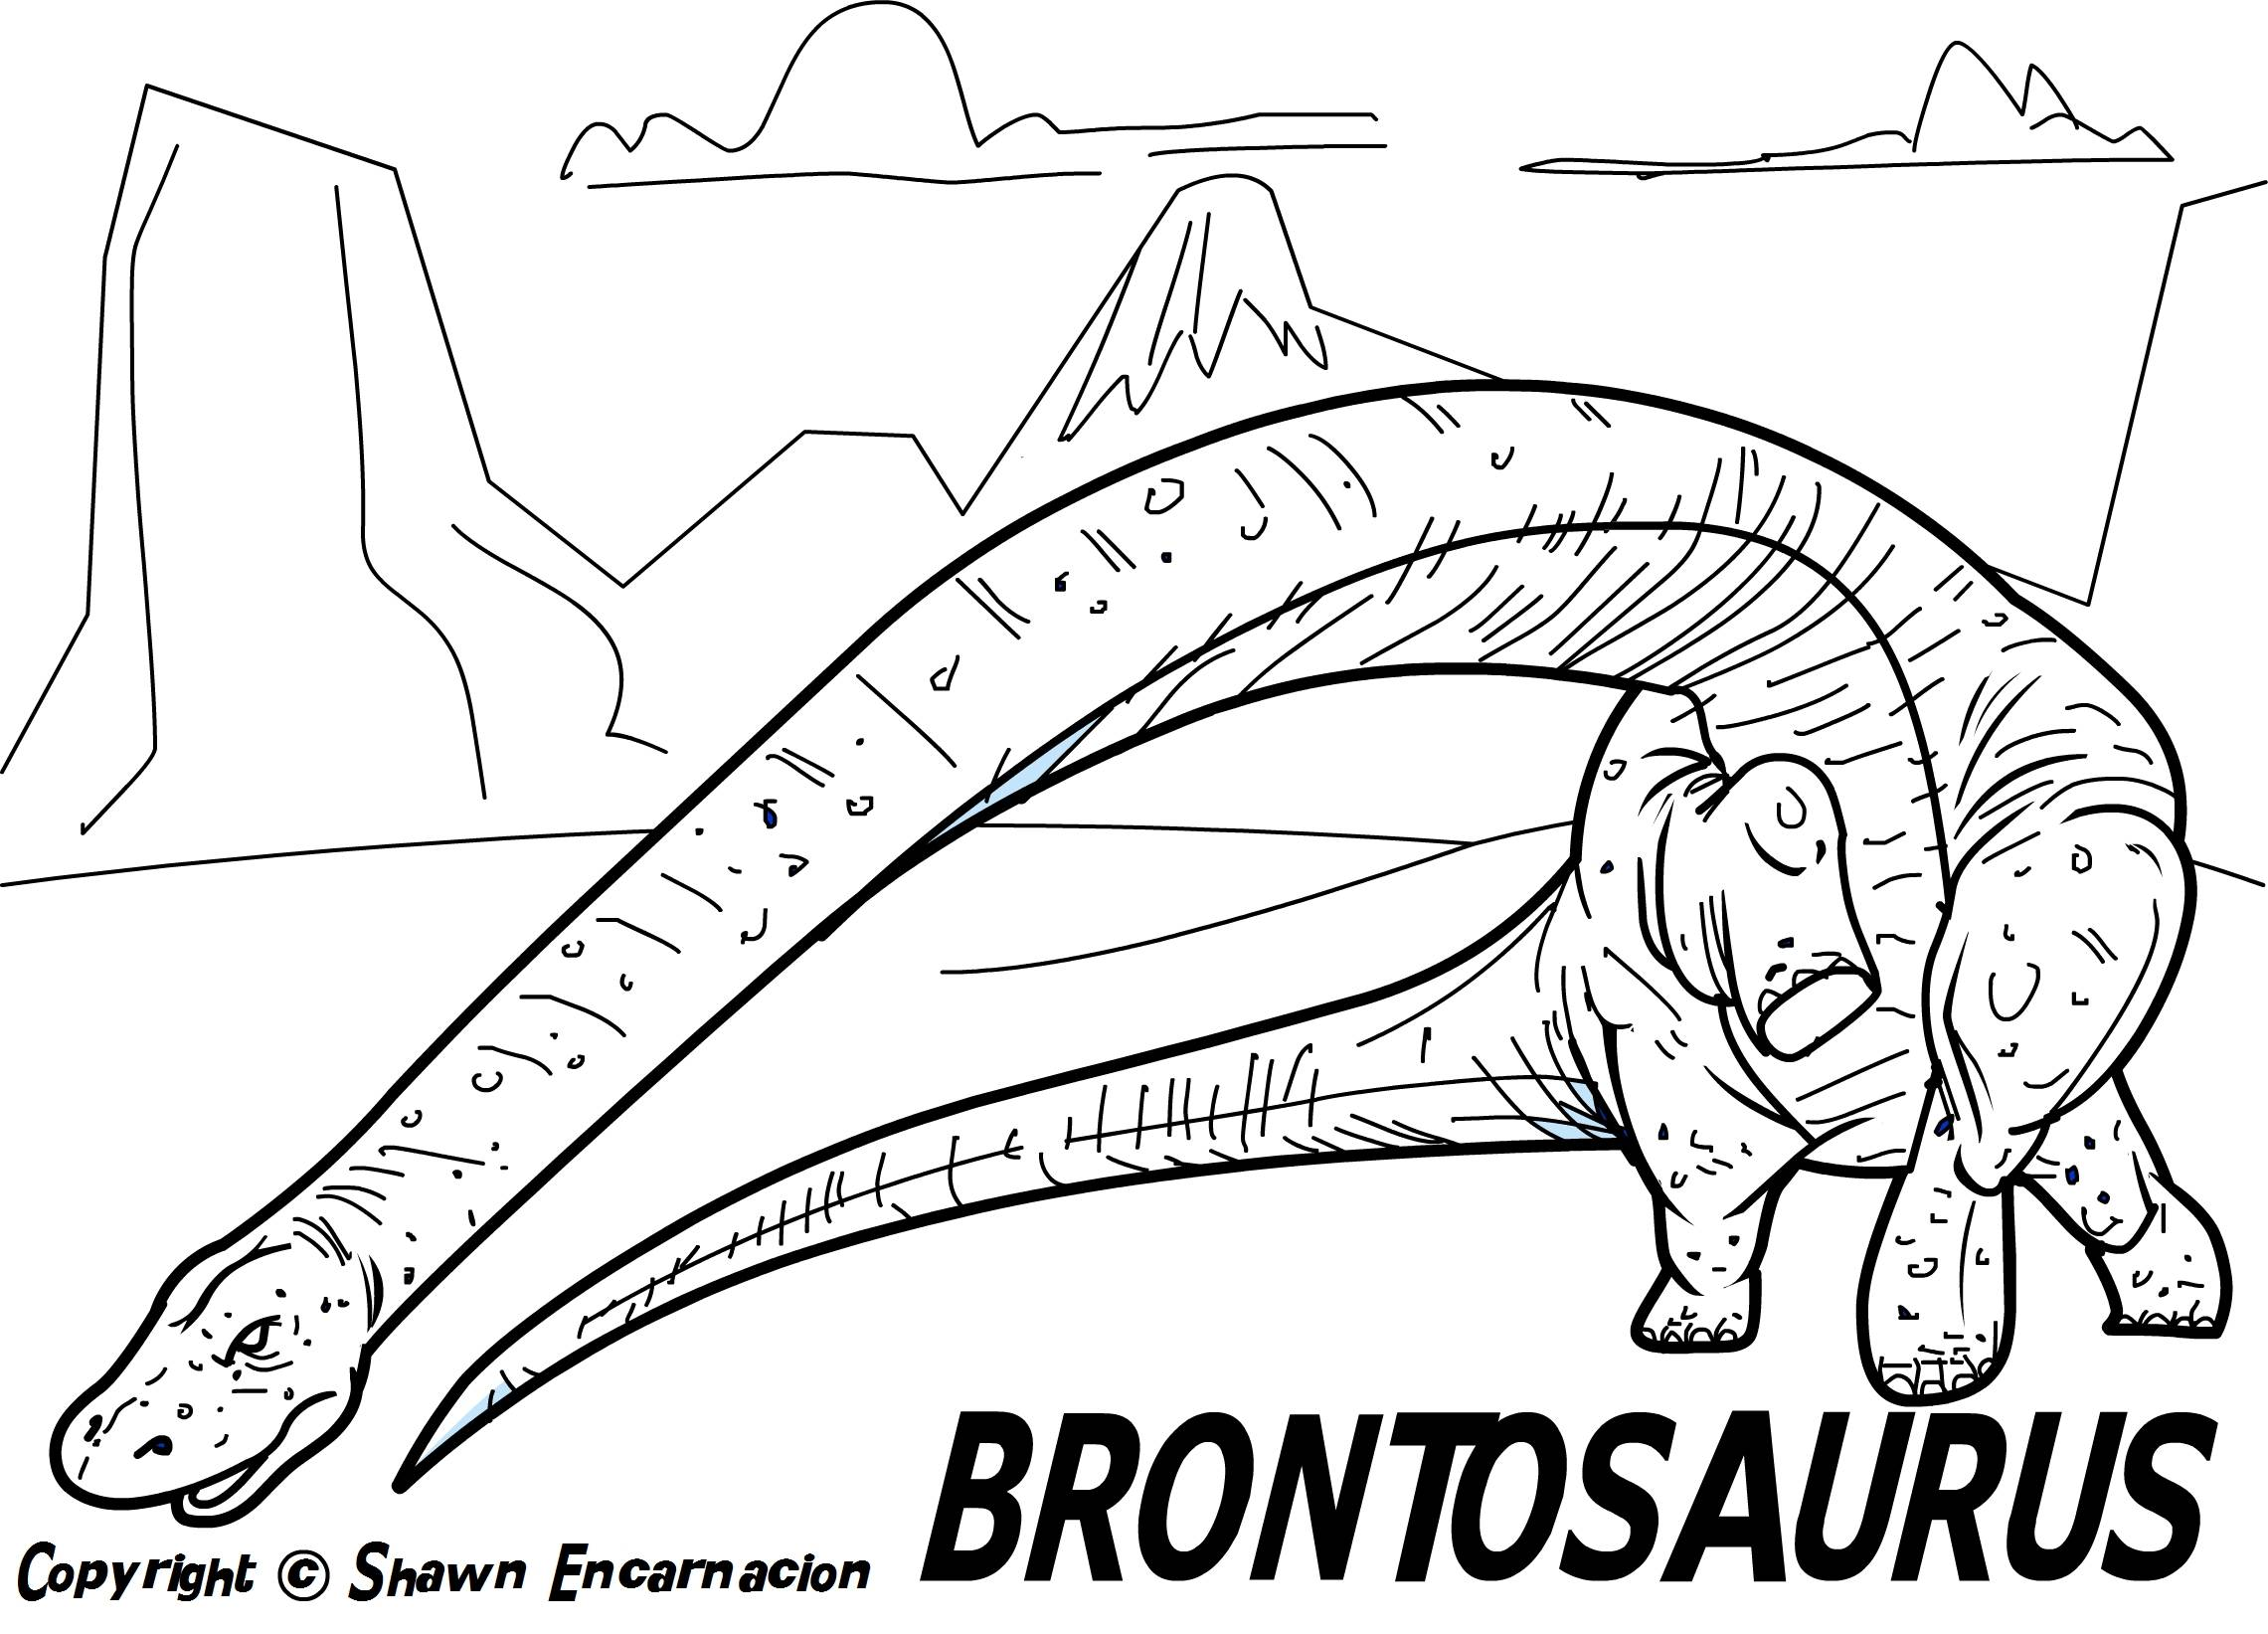 Terrible Lizards Dinosaurs coloring pages 17 Pictures and cliparts